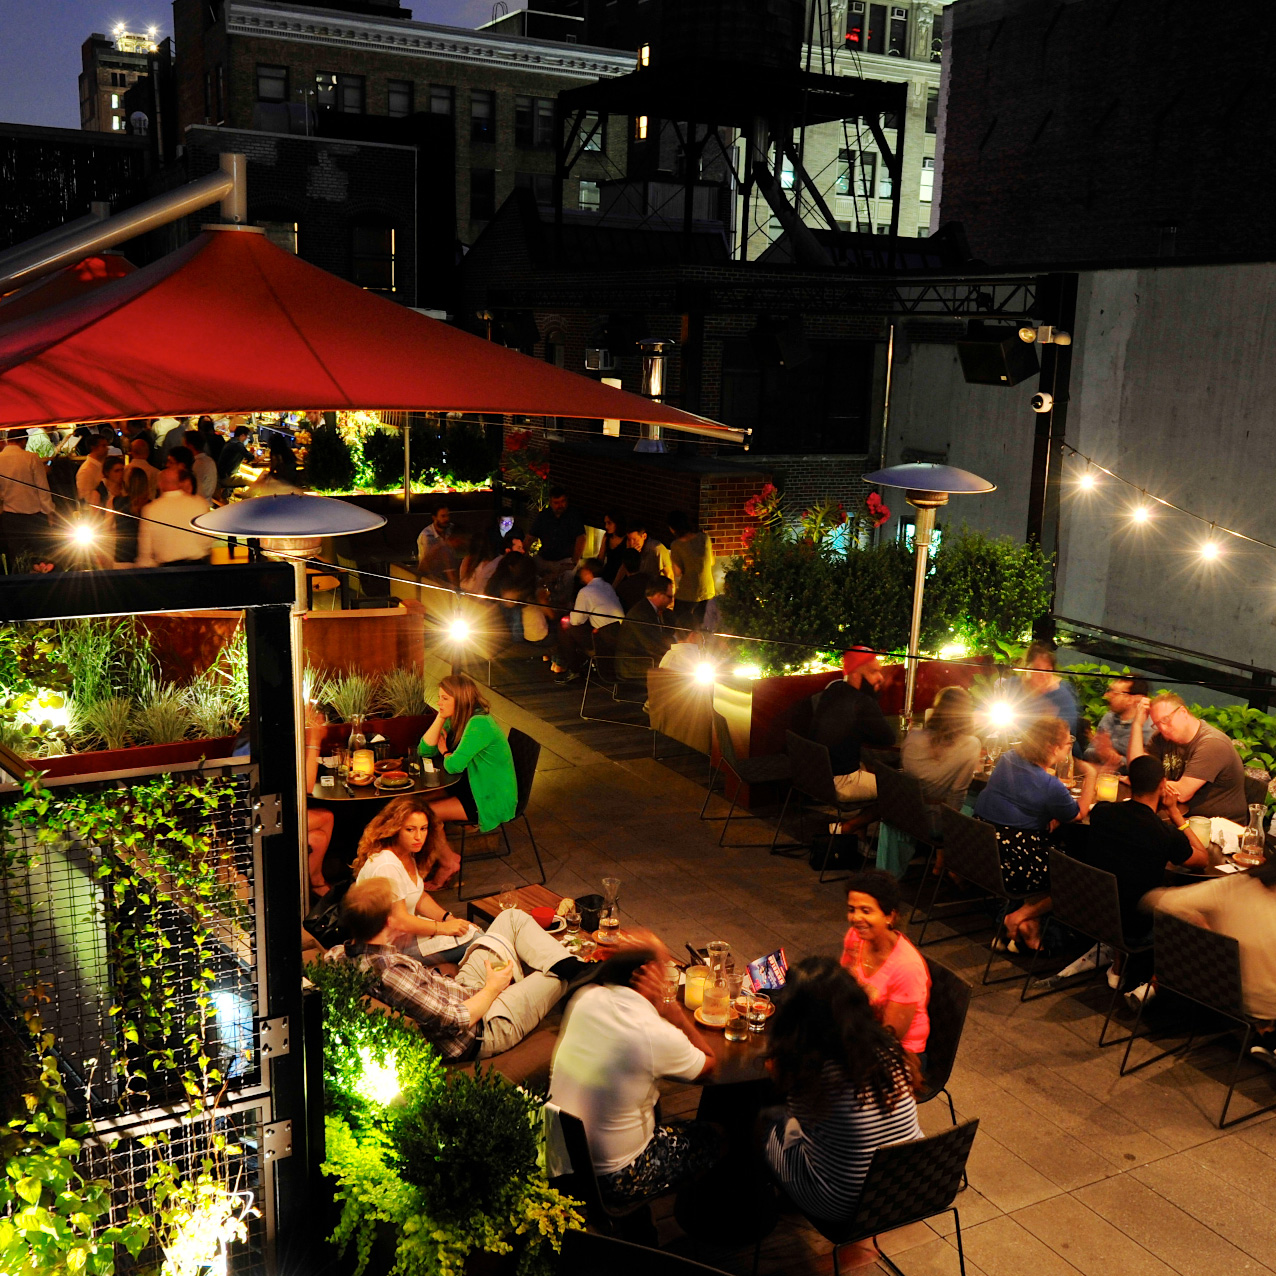 Best Hotel Bars: Roof at Park South